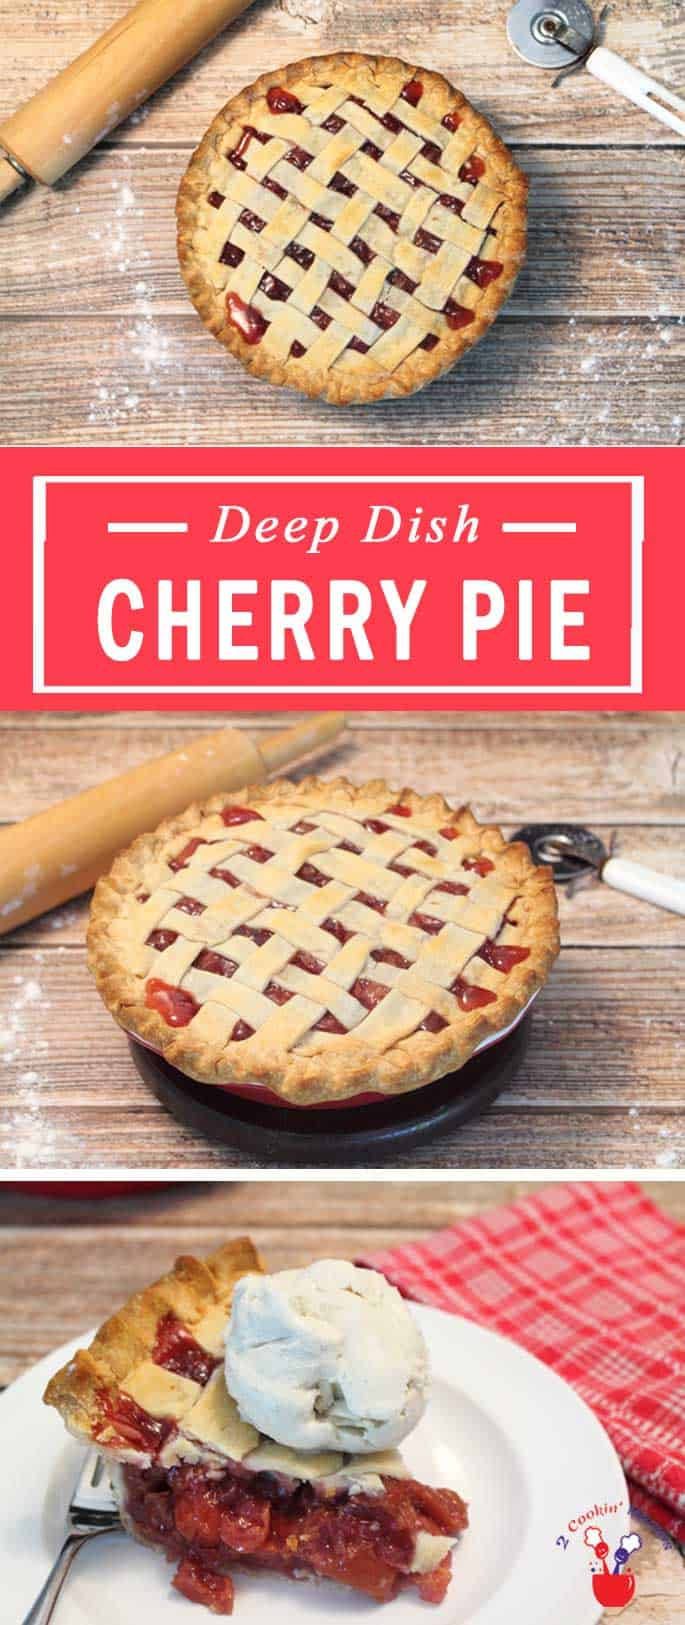 There's never been a deep dish cherry pie this good! Fresh cherries with just the right amount of sweetness are nestled in a flaky buttery pie crust. Yum! #cherrypie #pie #cherries #dessert #flakycrust